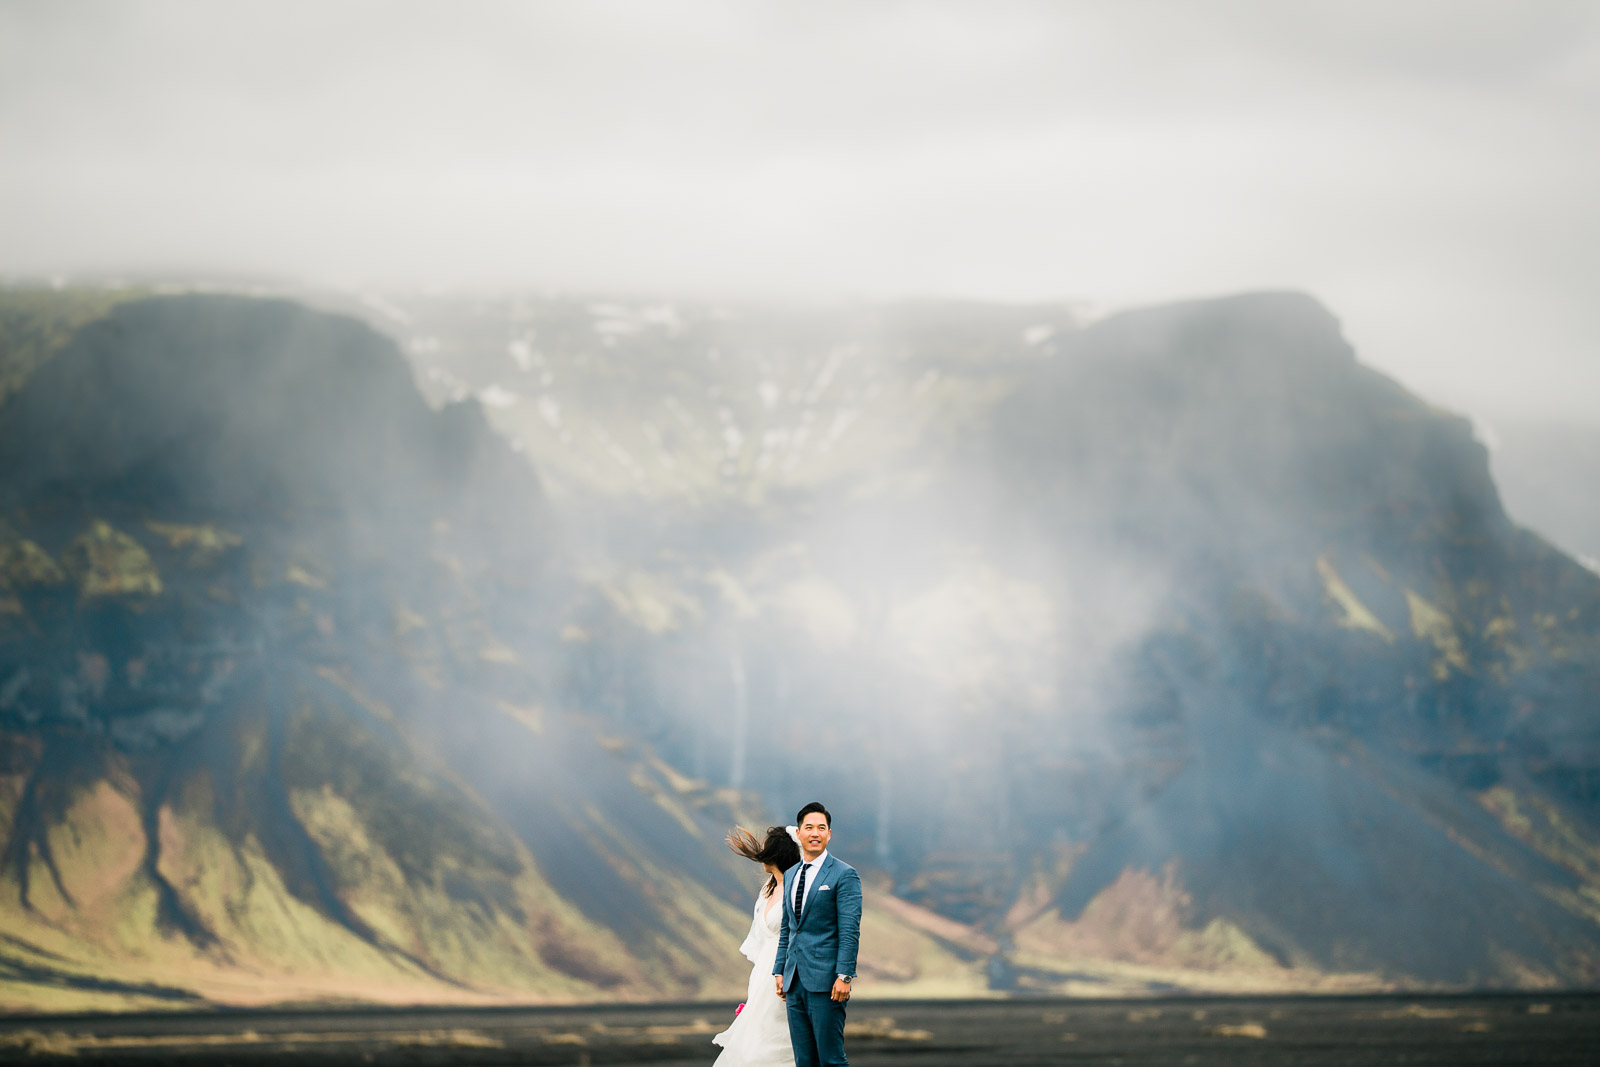 Jackie_Simon_Iceland_Elopement_Weddings_MJ_Studios-25